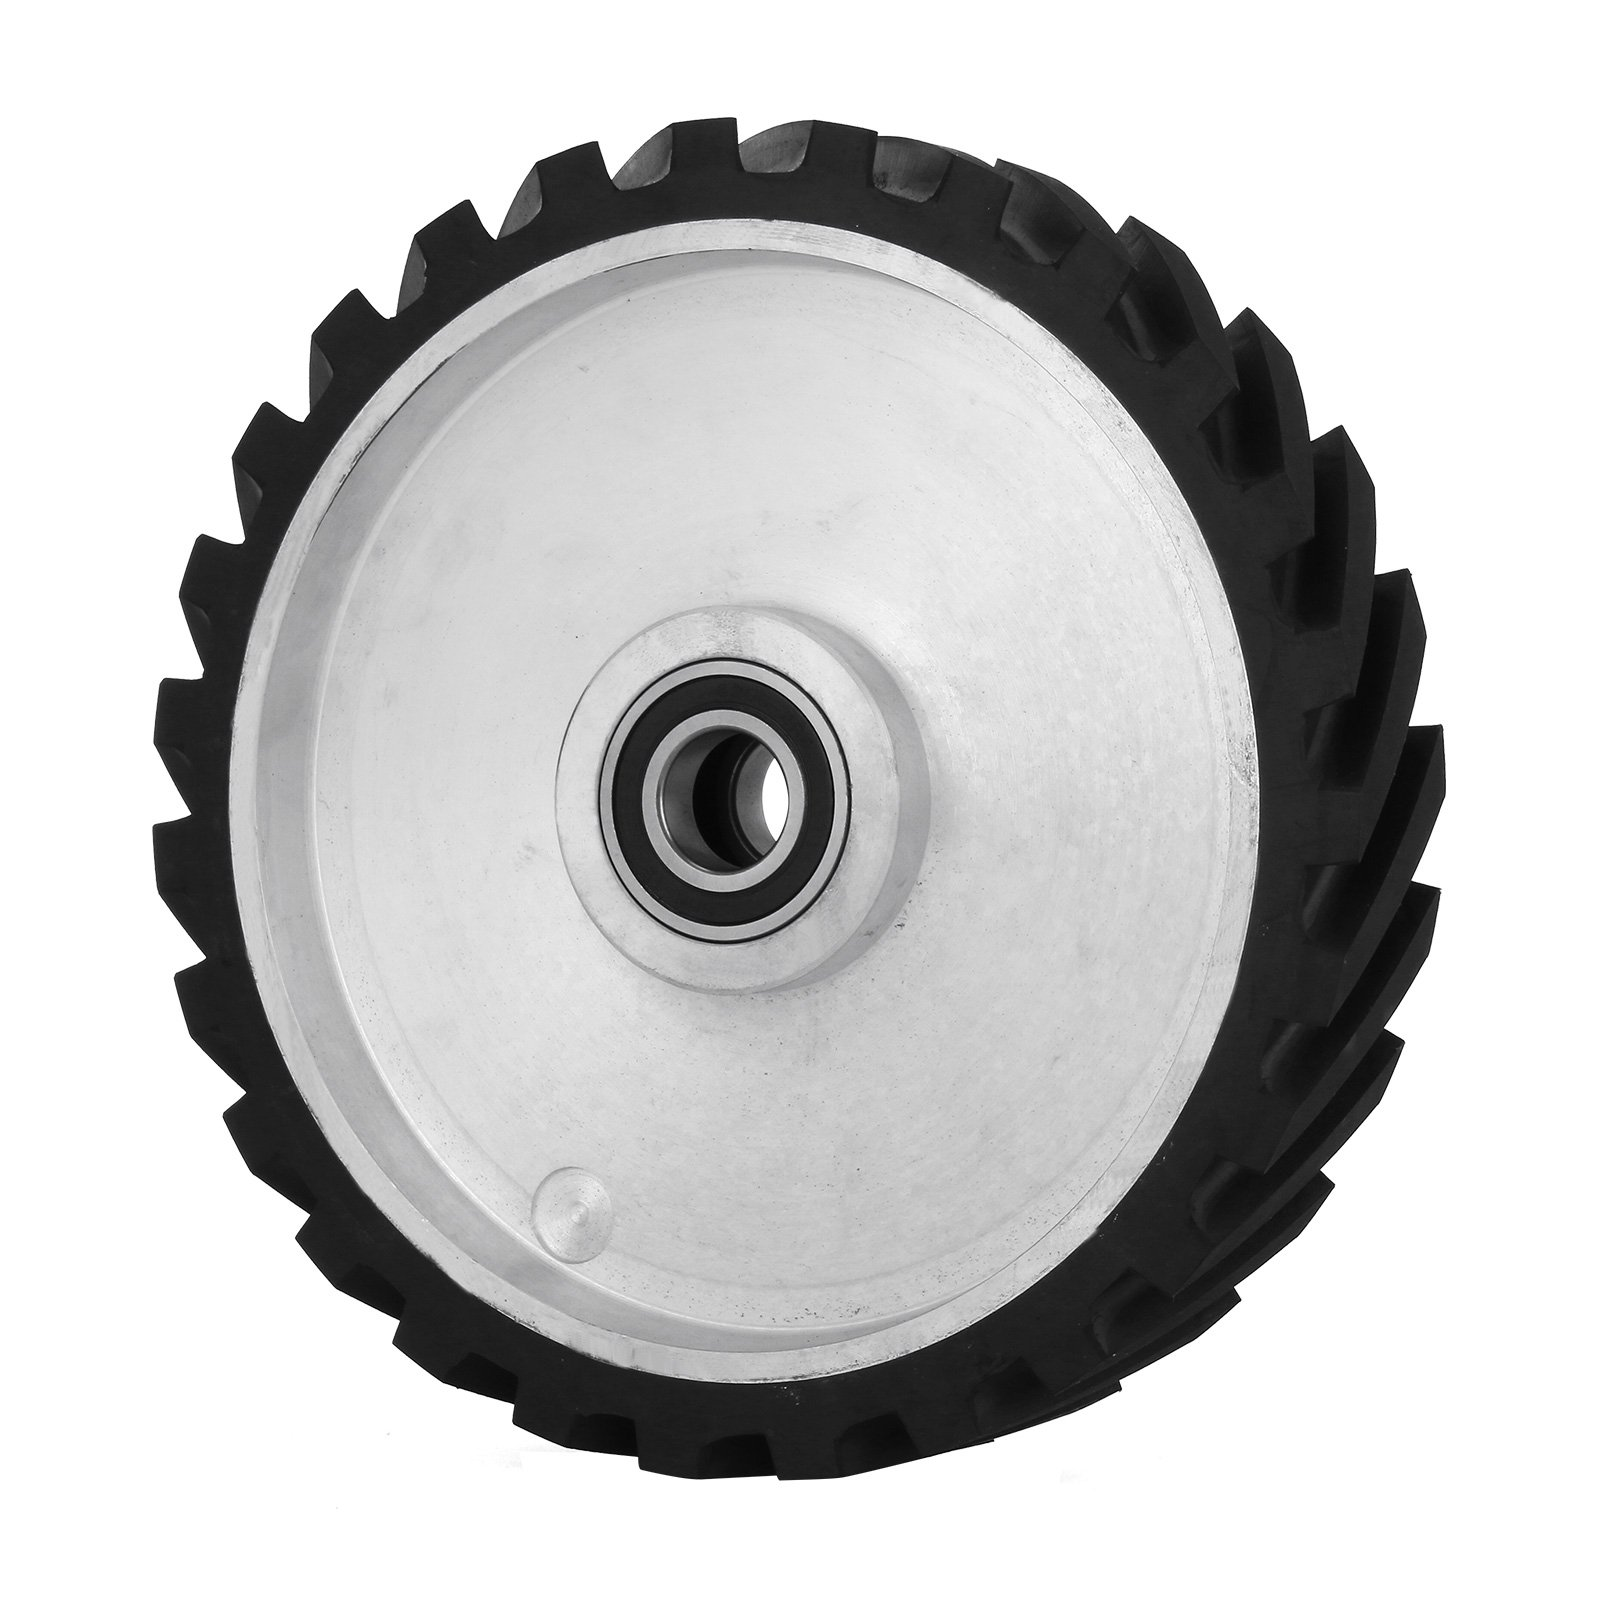 Silver Dynabrade 11203 5//8-Inch Diameter by 3//8-Inch Wide Contact Arm Assy Rubber Wheel with 1//2-Inch Wide Platen for 1//2-Inch Wide by 18-Inch Length Belts